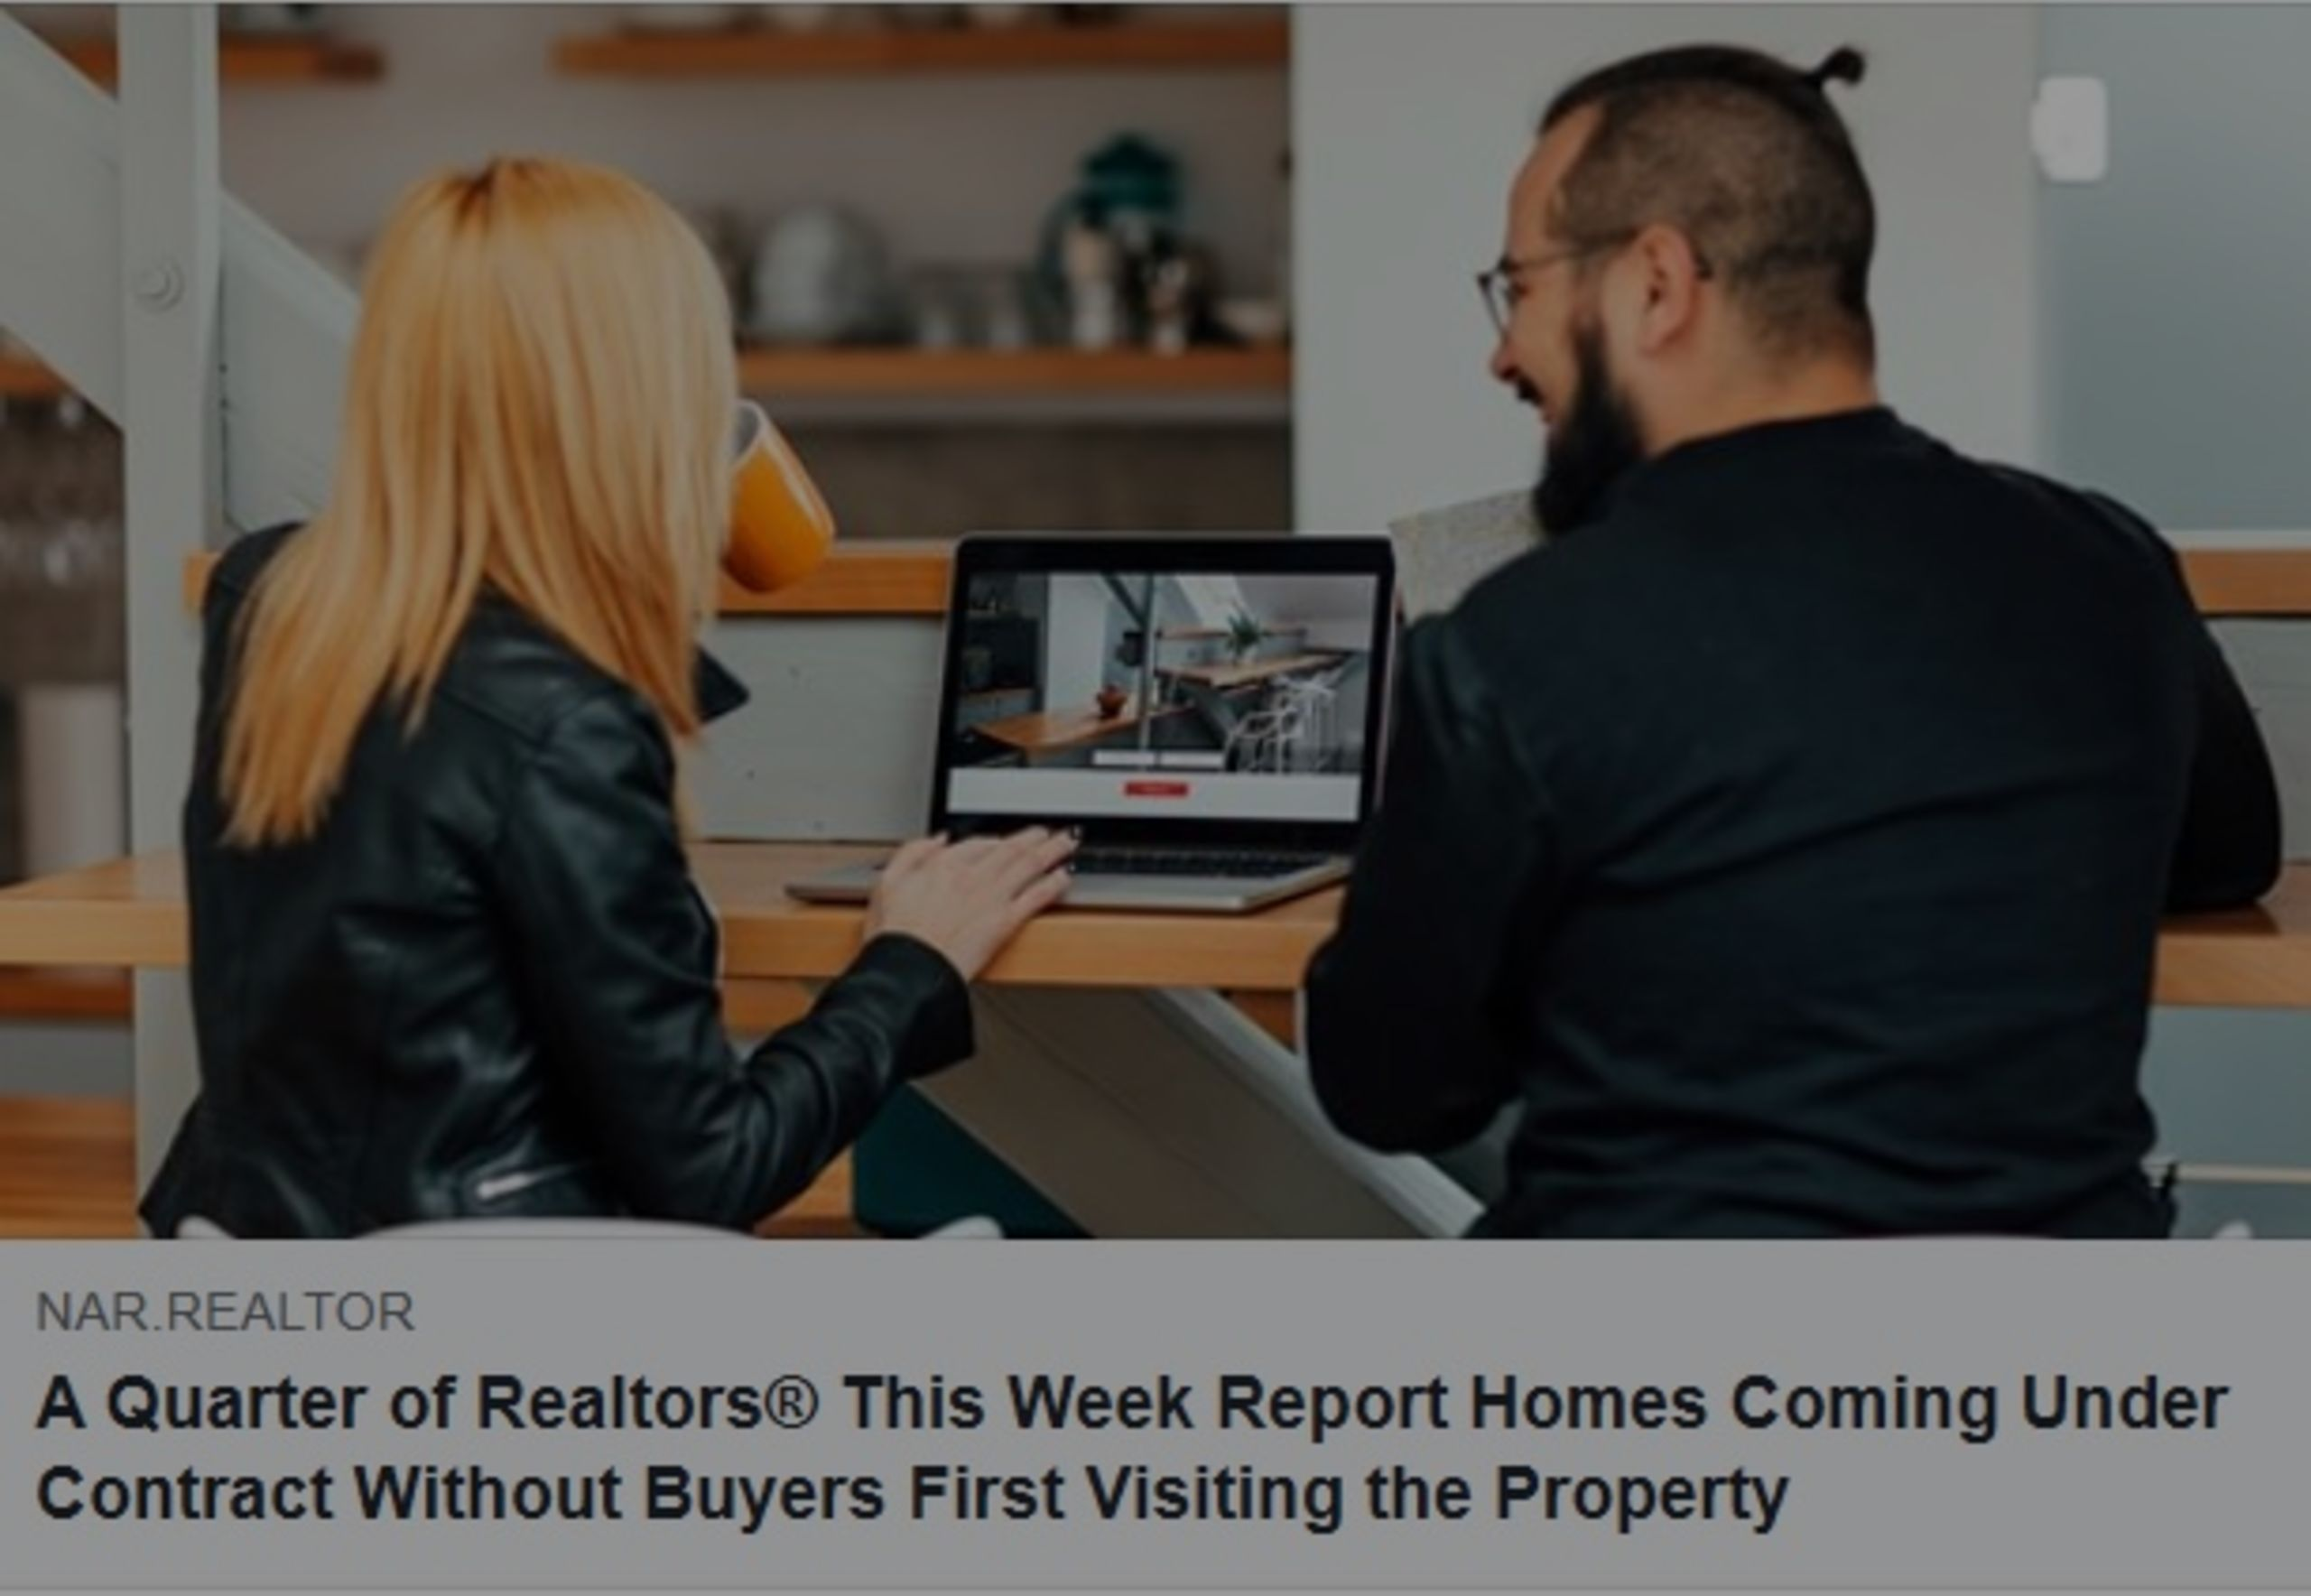 A Quarter of Realtors® This Week Report Homes Coming Under Contract Without Buyers First Visiting the Property